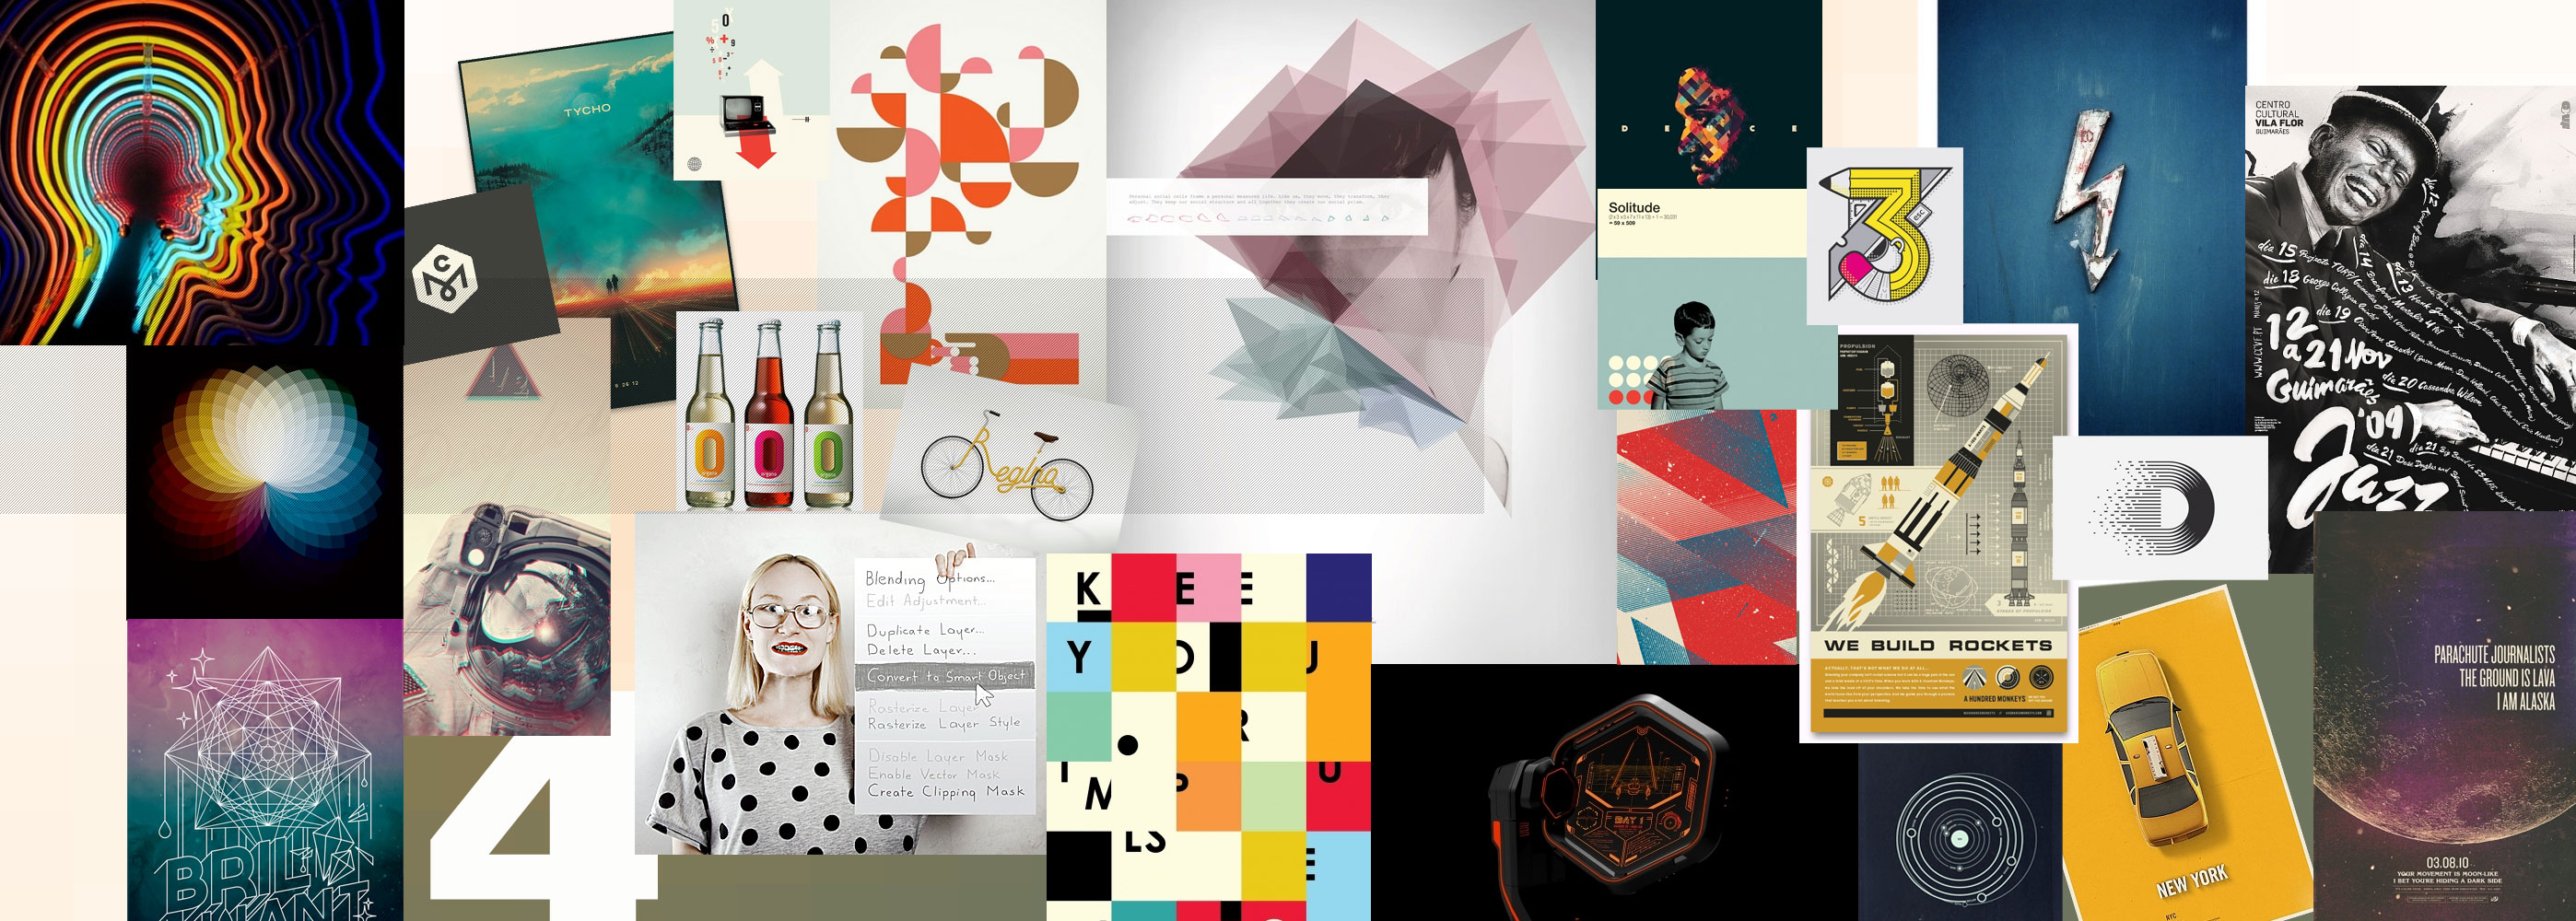 Square Design (Mood Boards)  - image 4 - student project